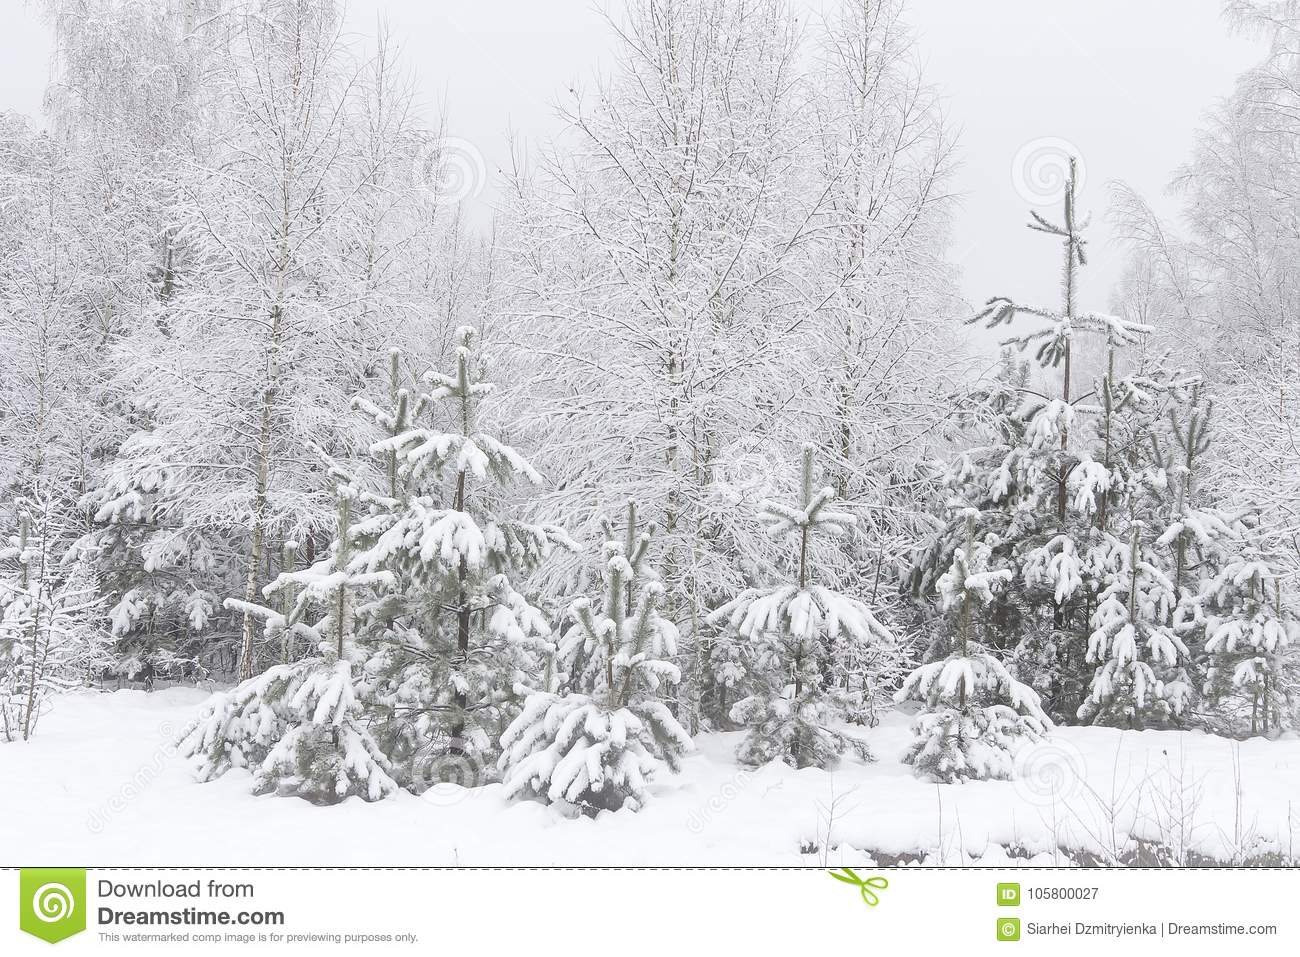 winter in pine forest snowy christmas trees natural scenery winter